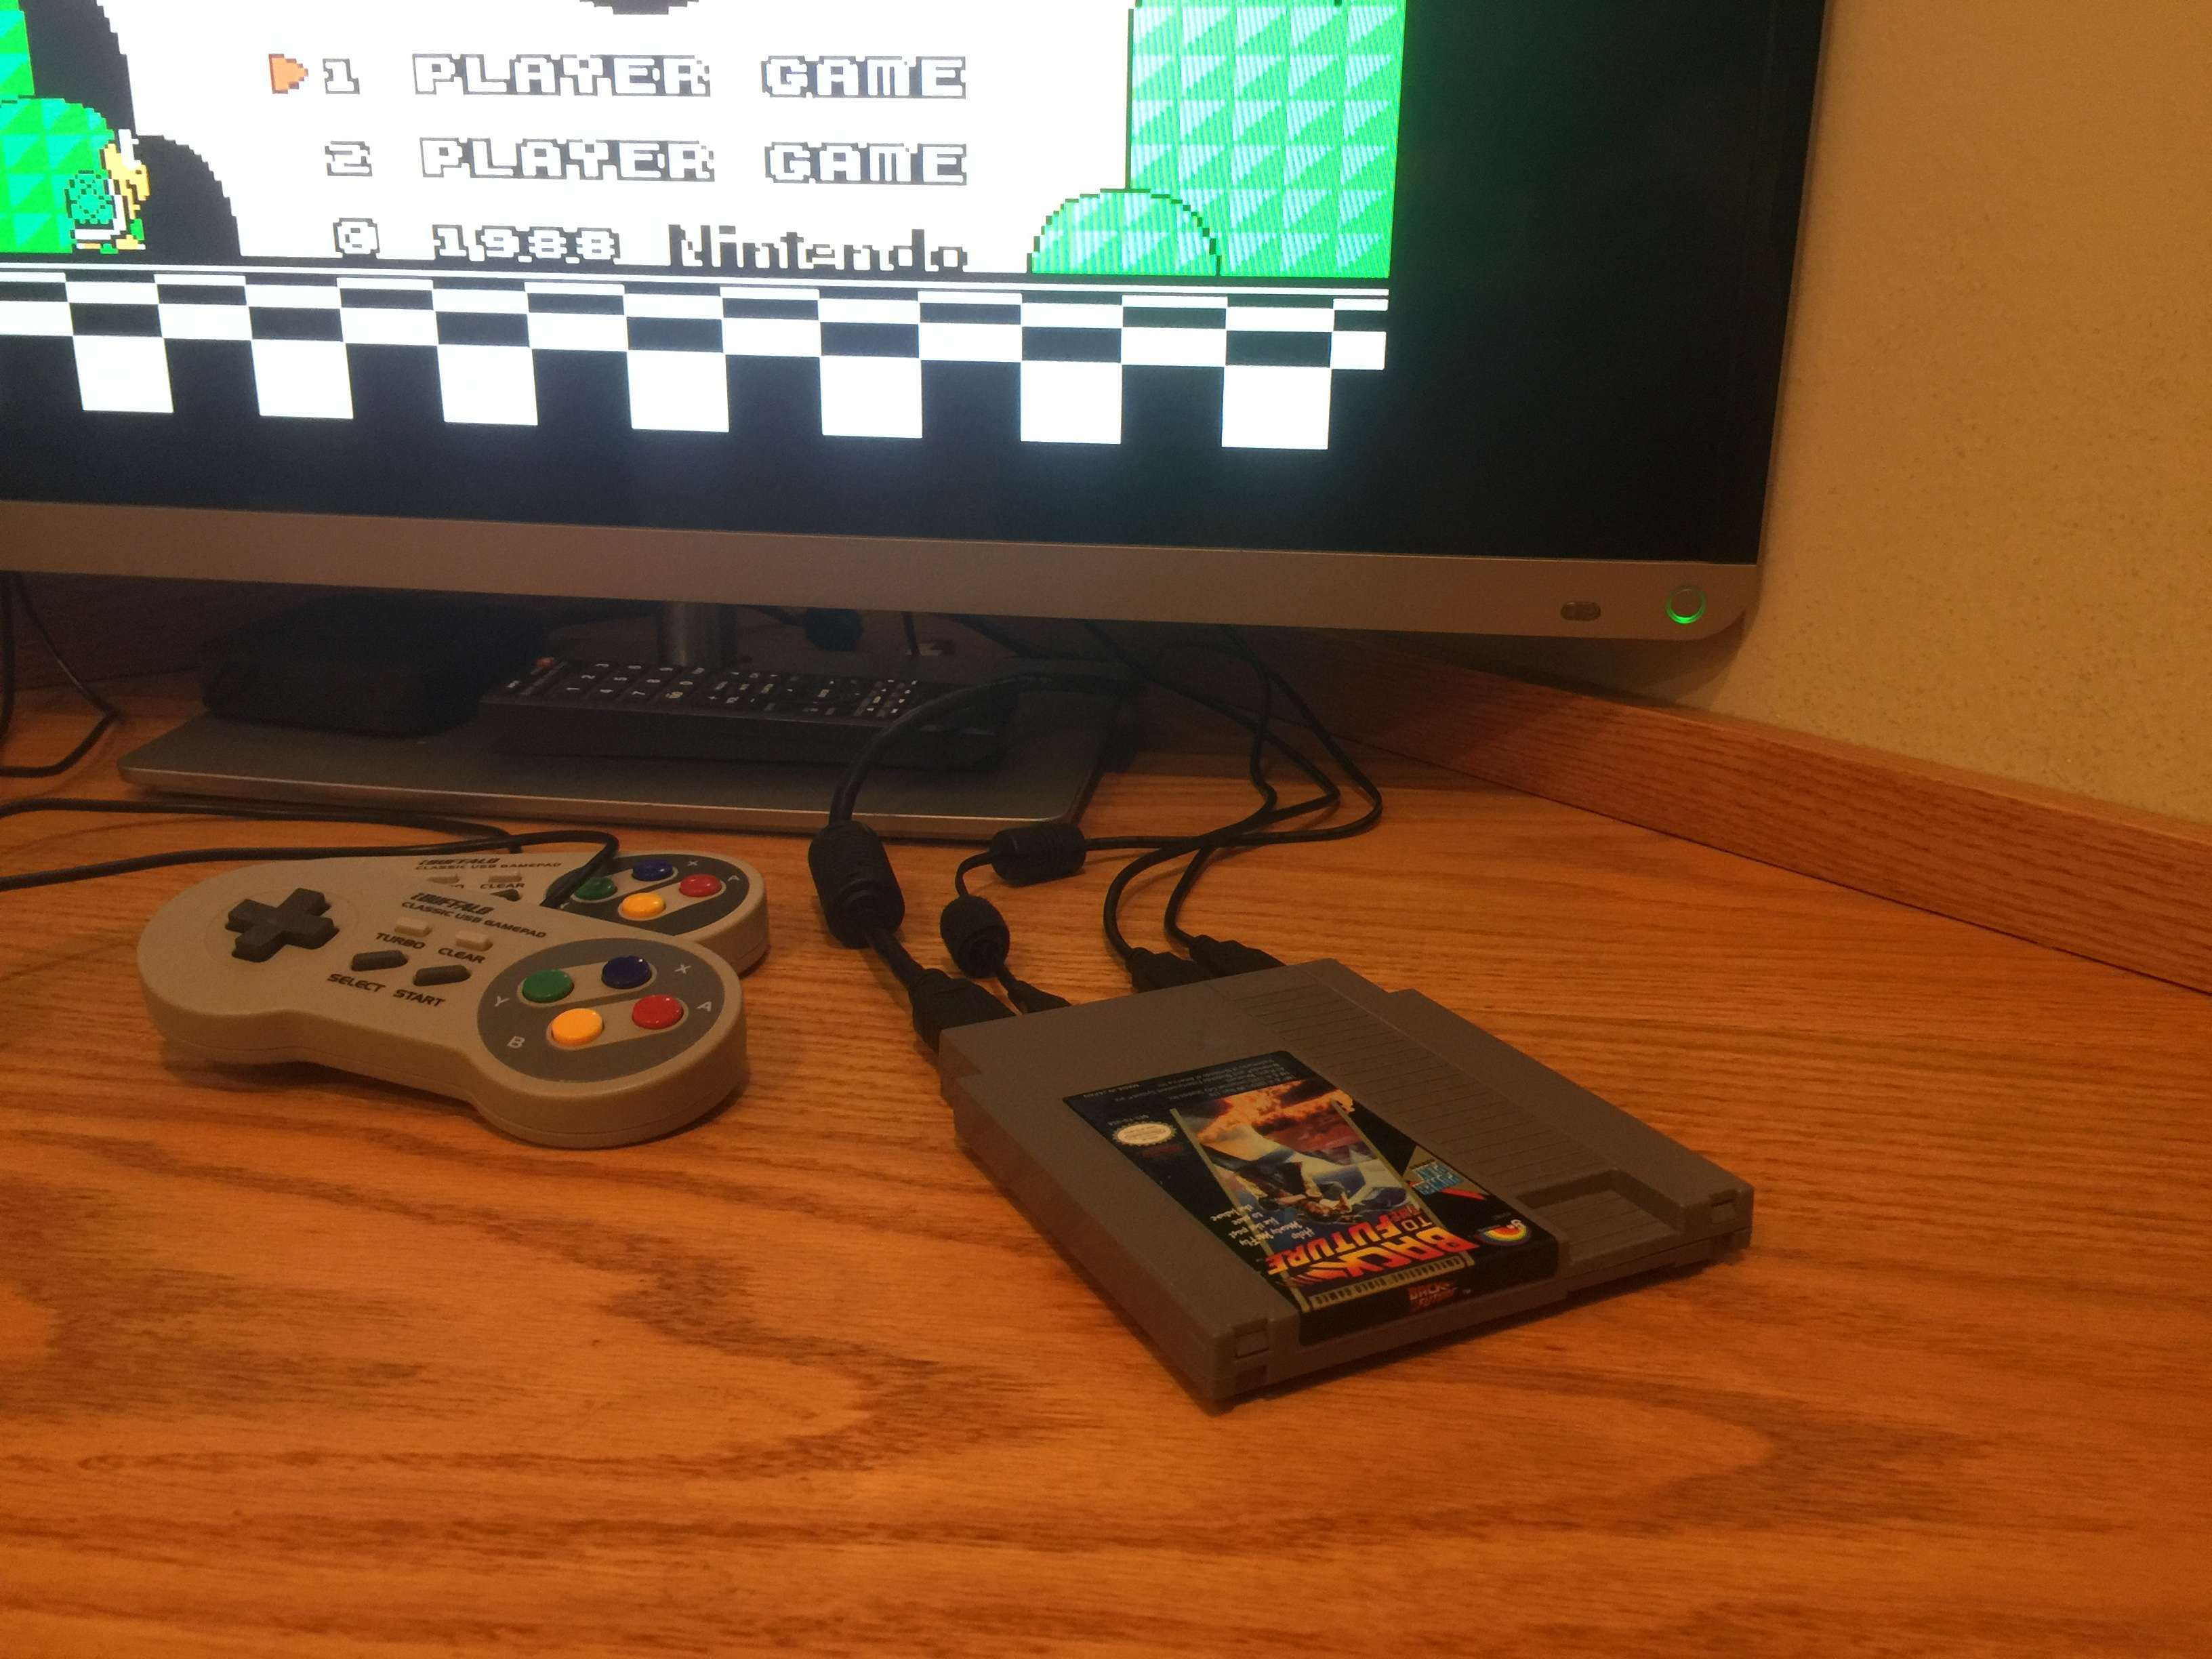 Plays up to PSX Kodi Full and Desktop included.32GB with 1000s of games and option for custom sticker Pi Cart 4-core Pi in NESpi Cartridge